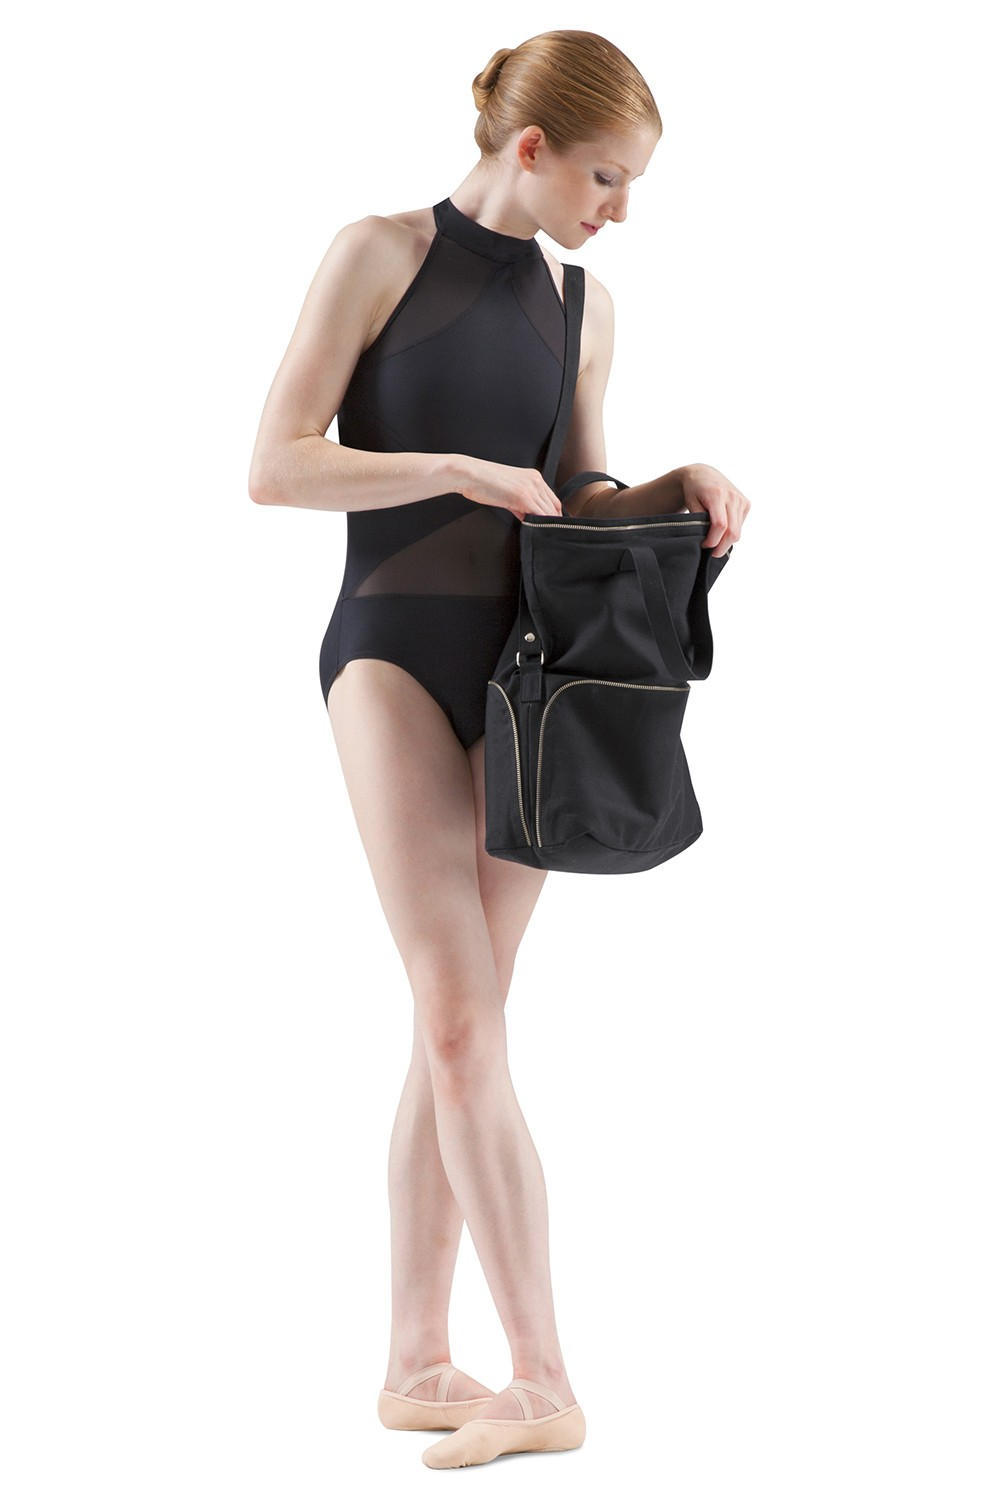 Dual Size Folding Bag Dance Bags